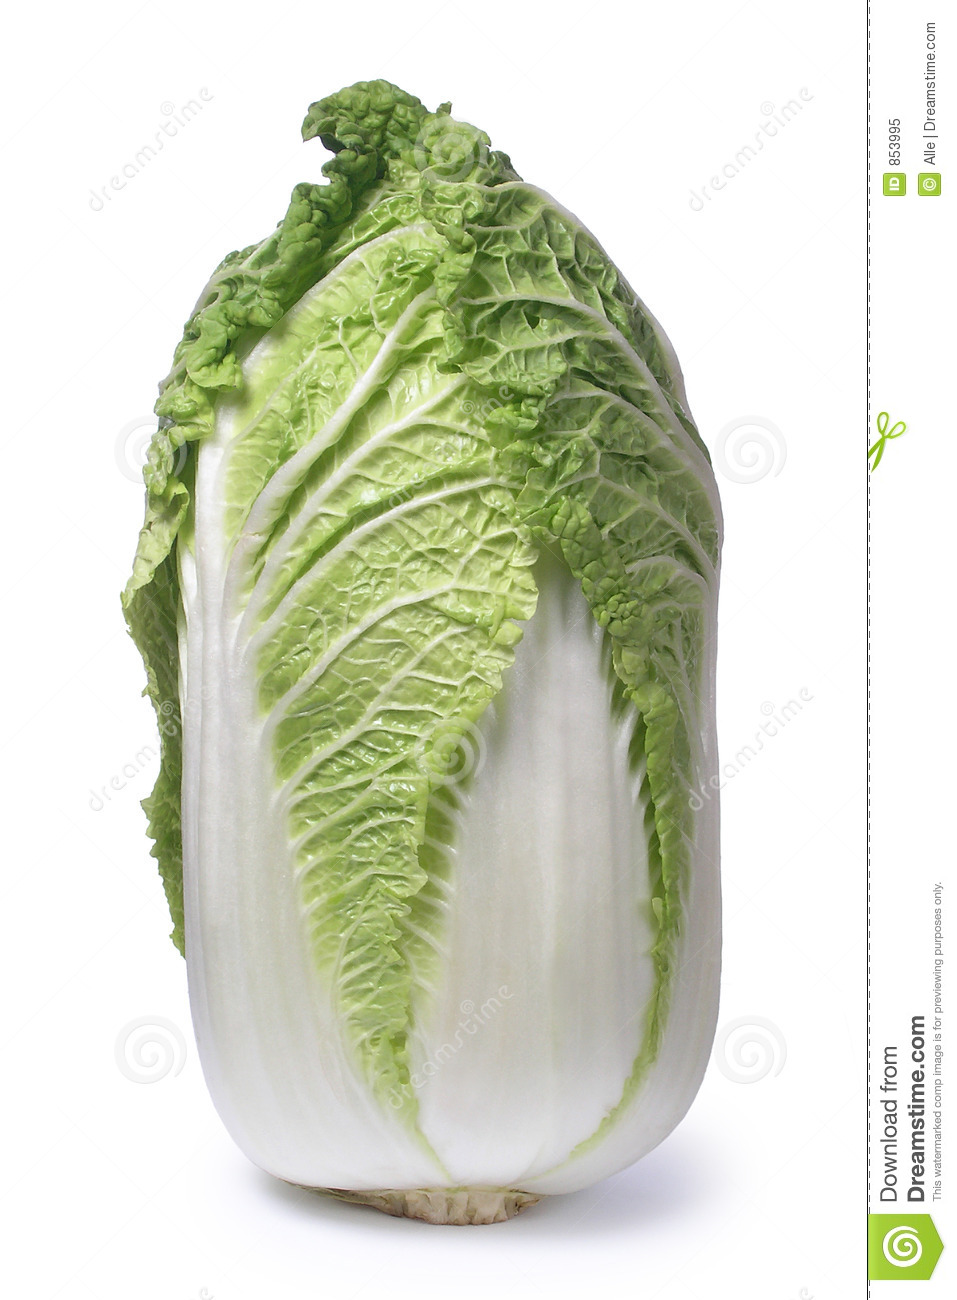 Chinese cabbage stock image. Image of white, green, food ...